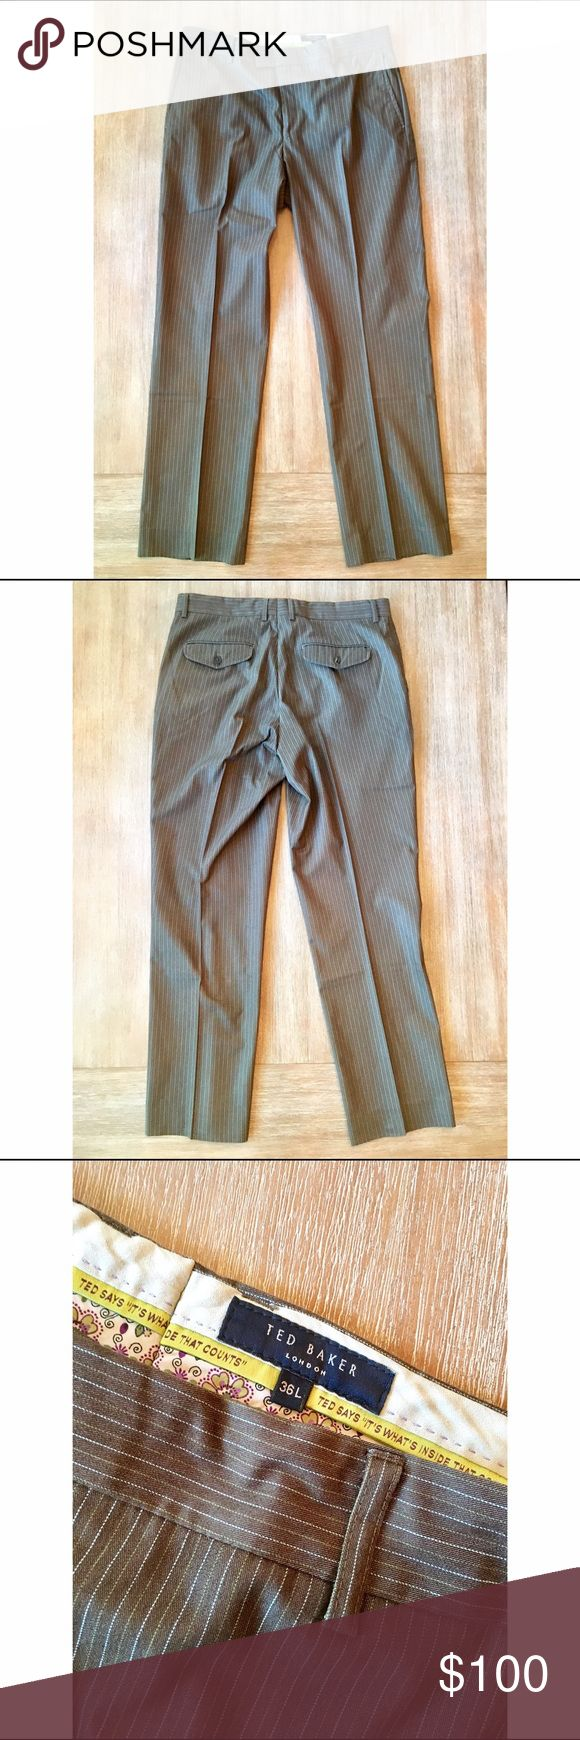 Brown Pinstriped Ted Baker Wool Pant Brown trousers feature light blue and olive green pinstripes. Beautiful fall pant. Like new. Ted Baker Pants Dress